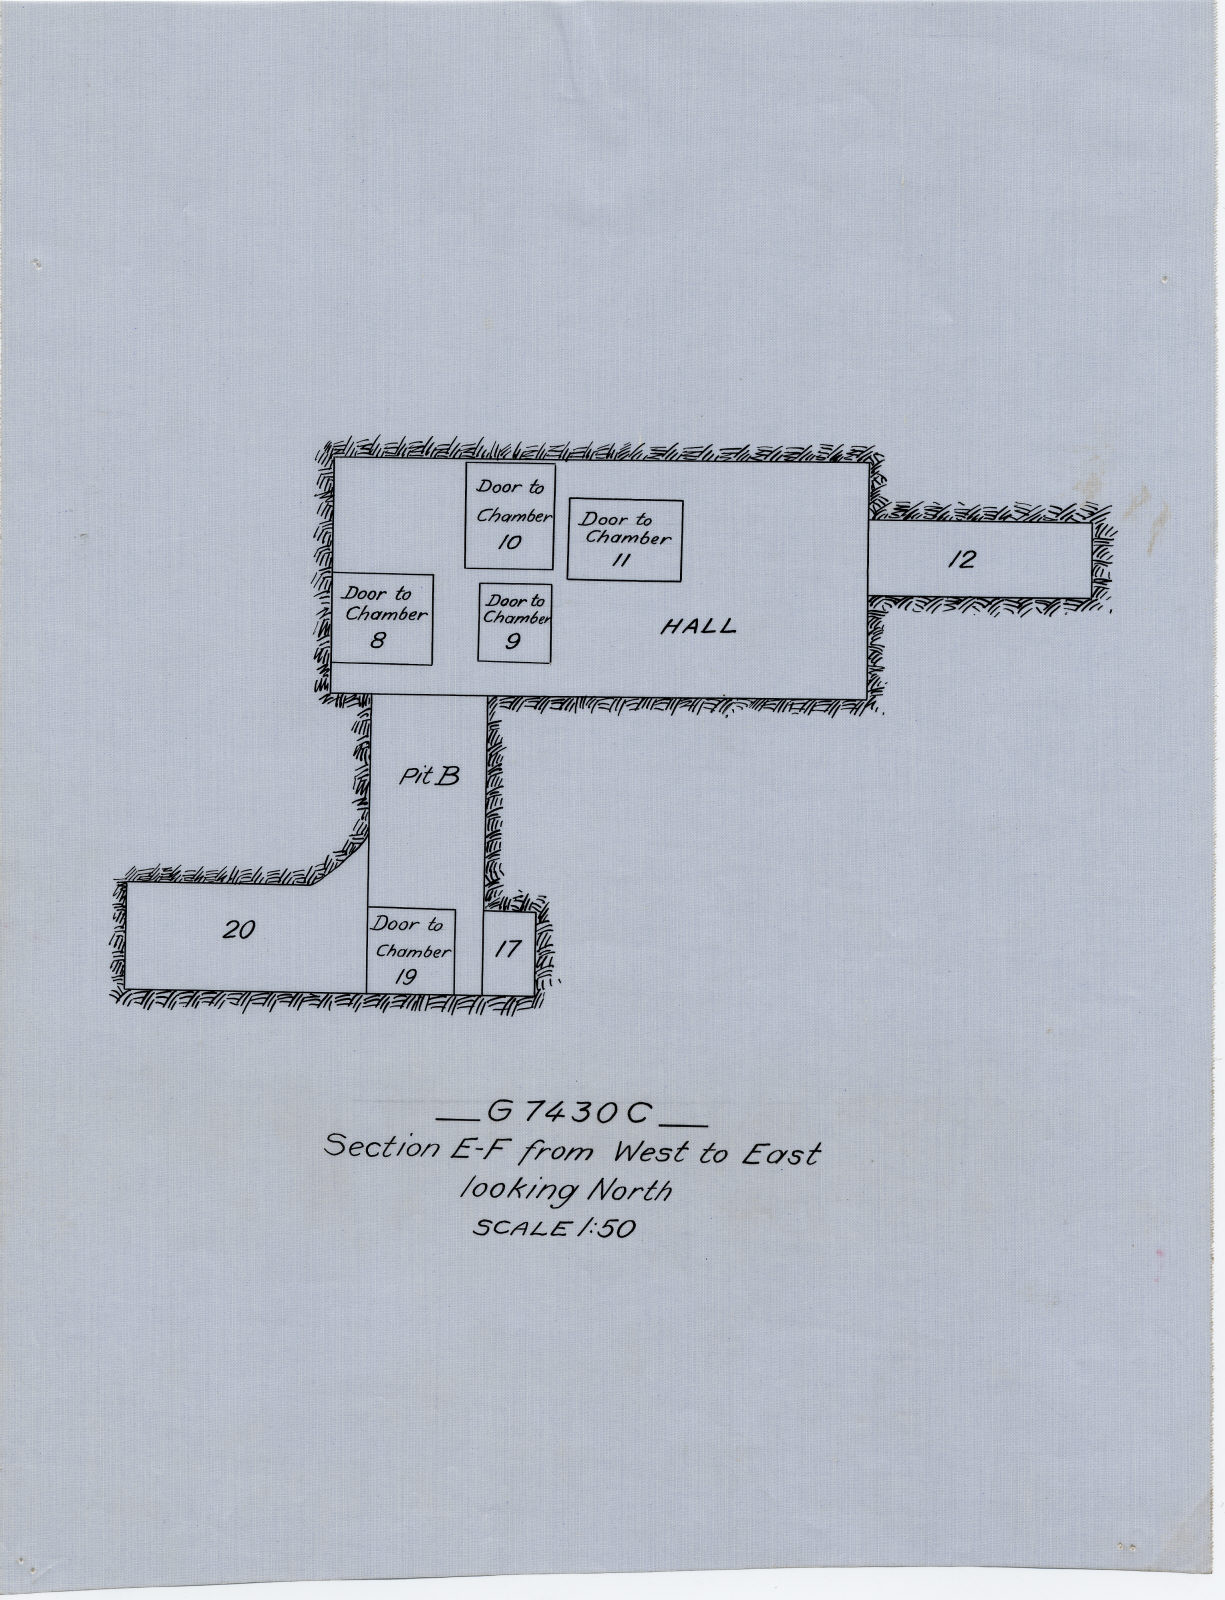 Maps and plans: G 7430, Shaft C